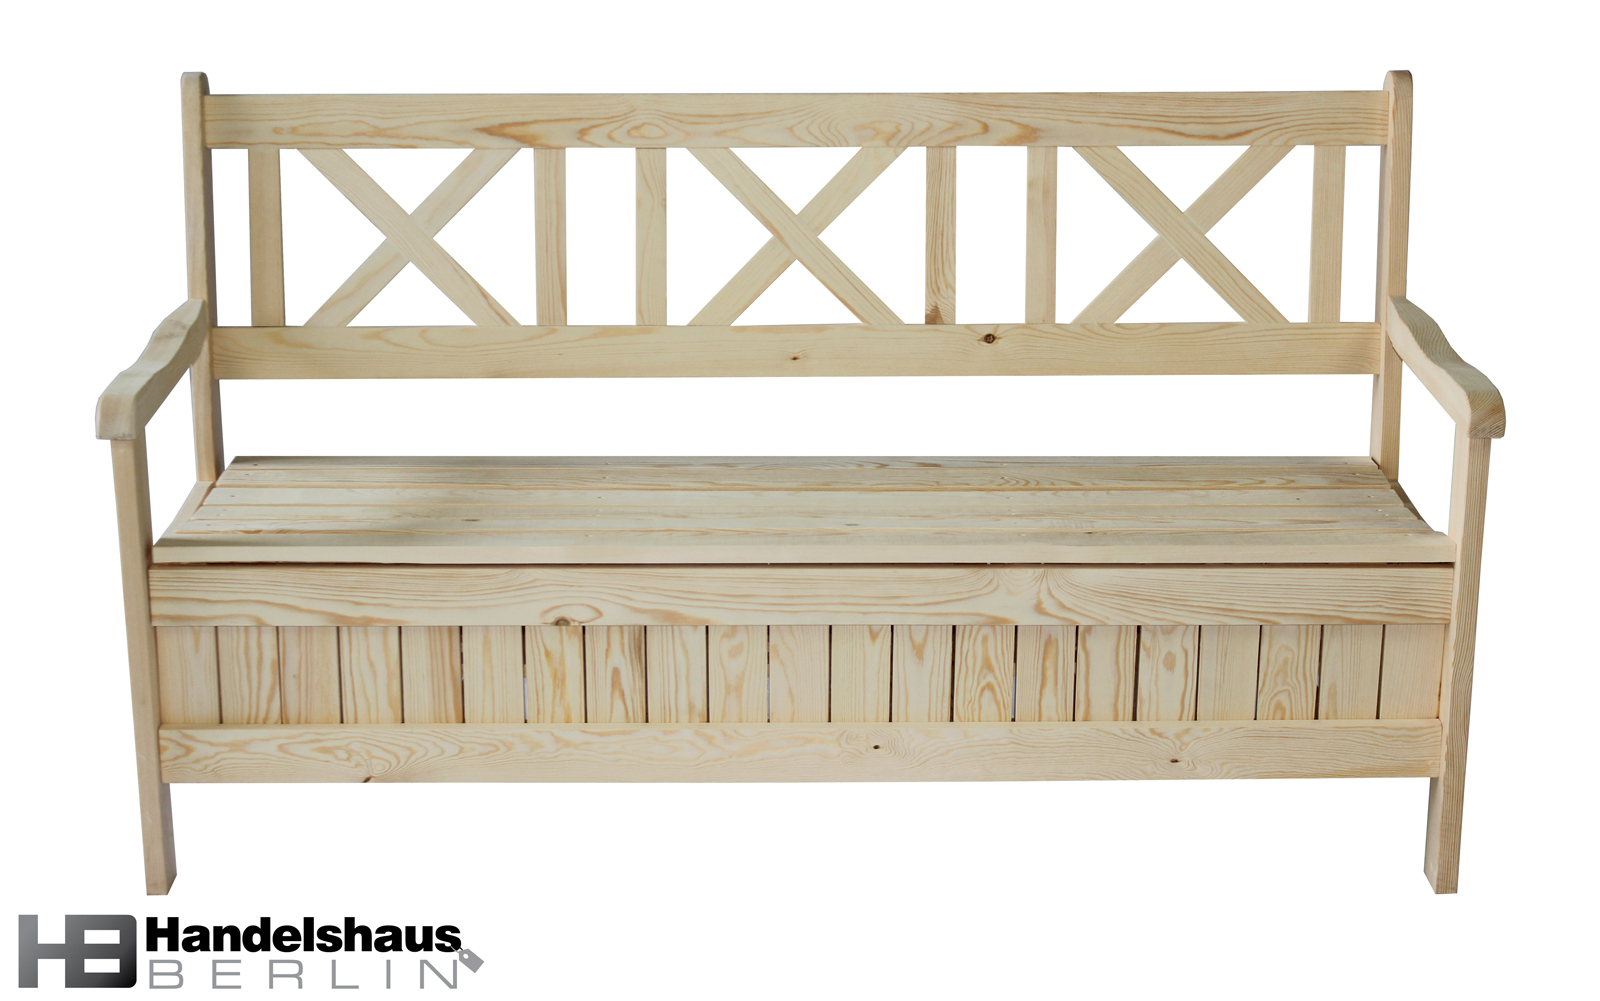 gartenbank holz mit stauraum vi42 hitoiro. Black Bedroom Furniture Sets. Home Design Ideas